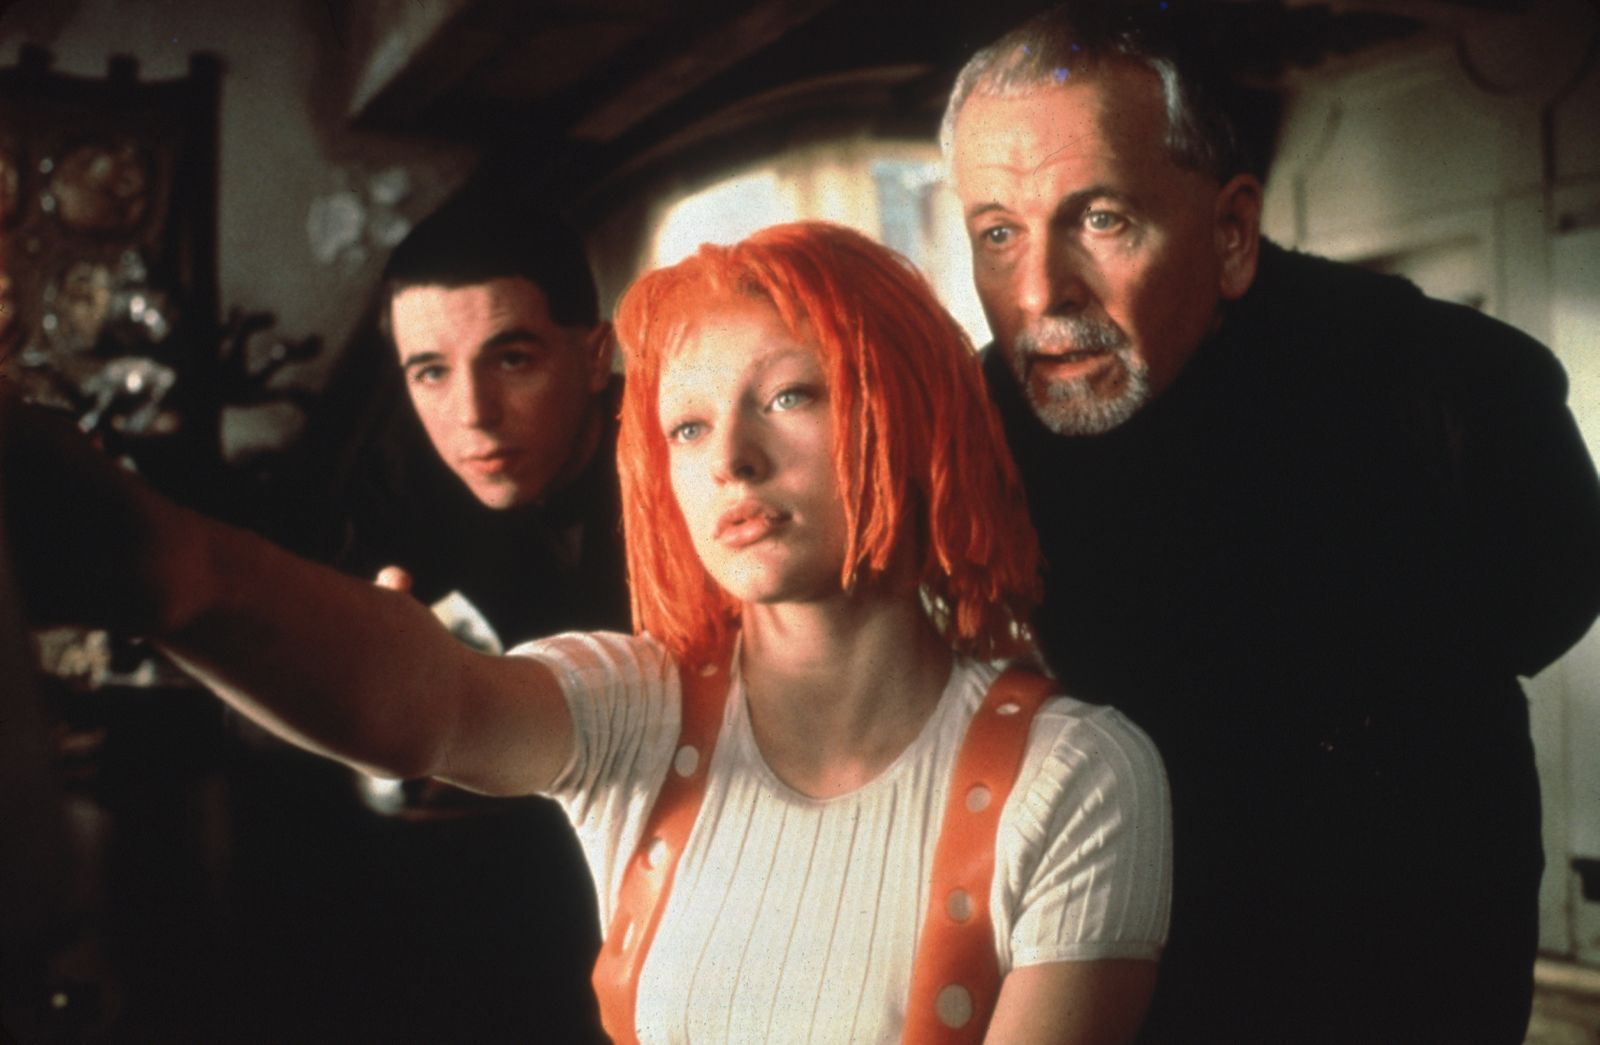 """""""The Fifth Element"""" Milla Jovovich, Ian Holm © 1997 Columbia / Tri-Star Photo by Jack English"""